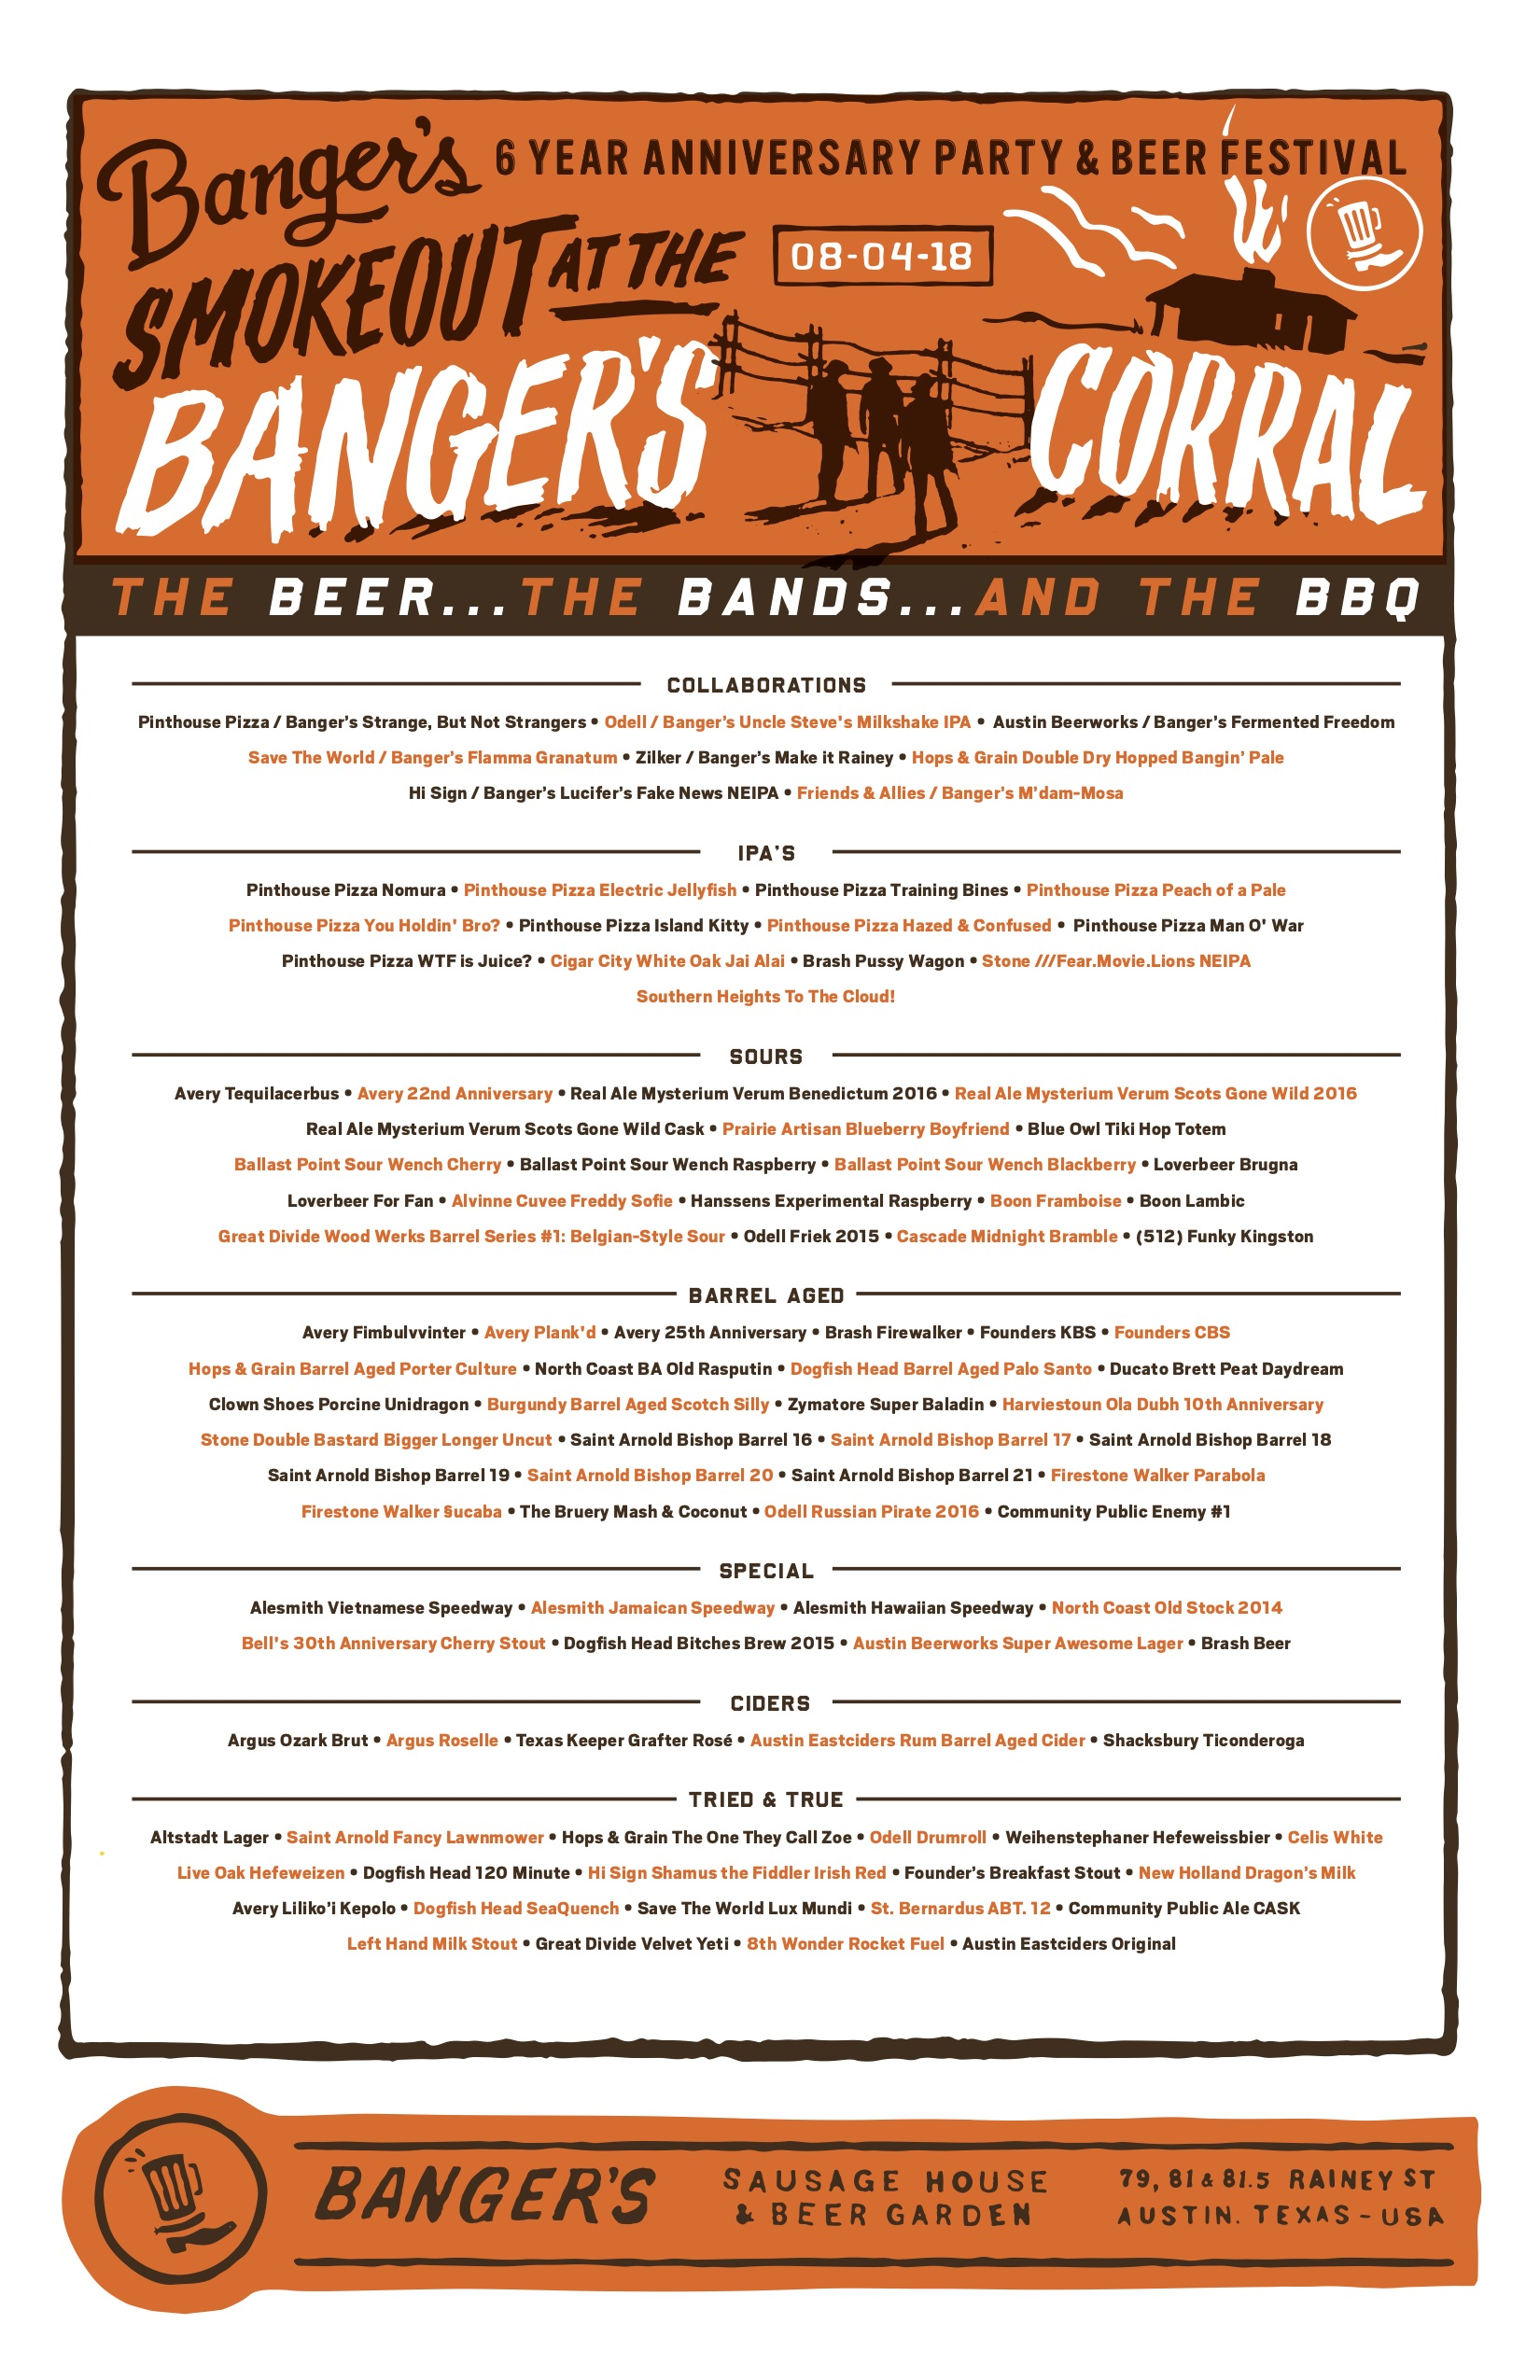 FINAL Bangers 6 YearParty Poster Print.jpg